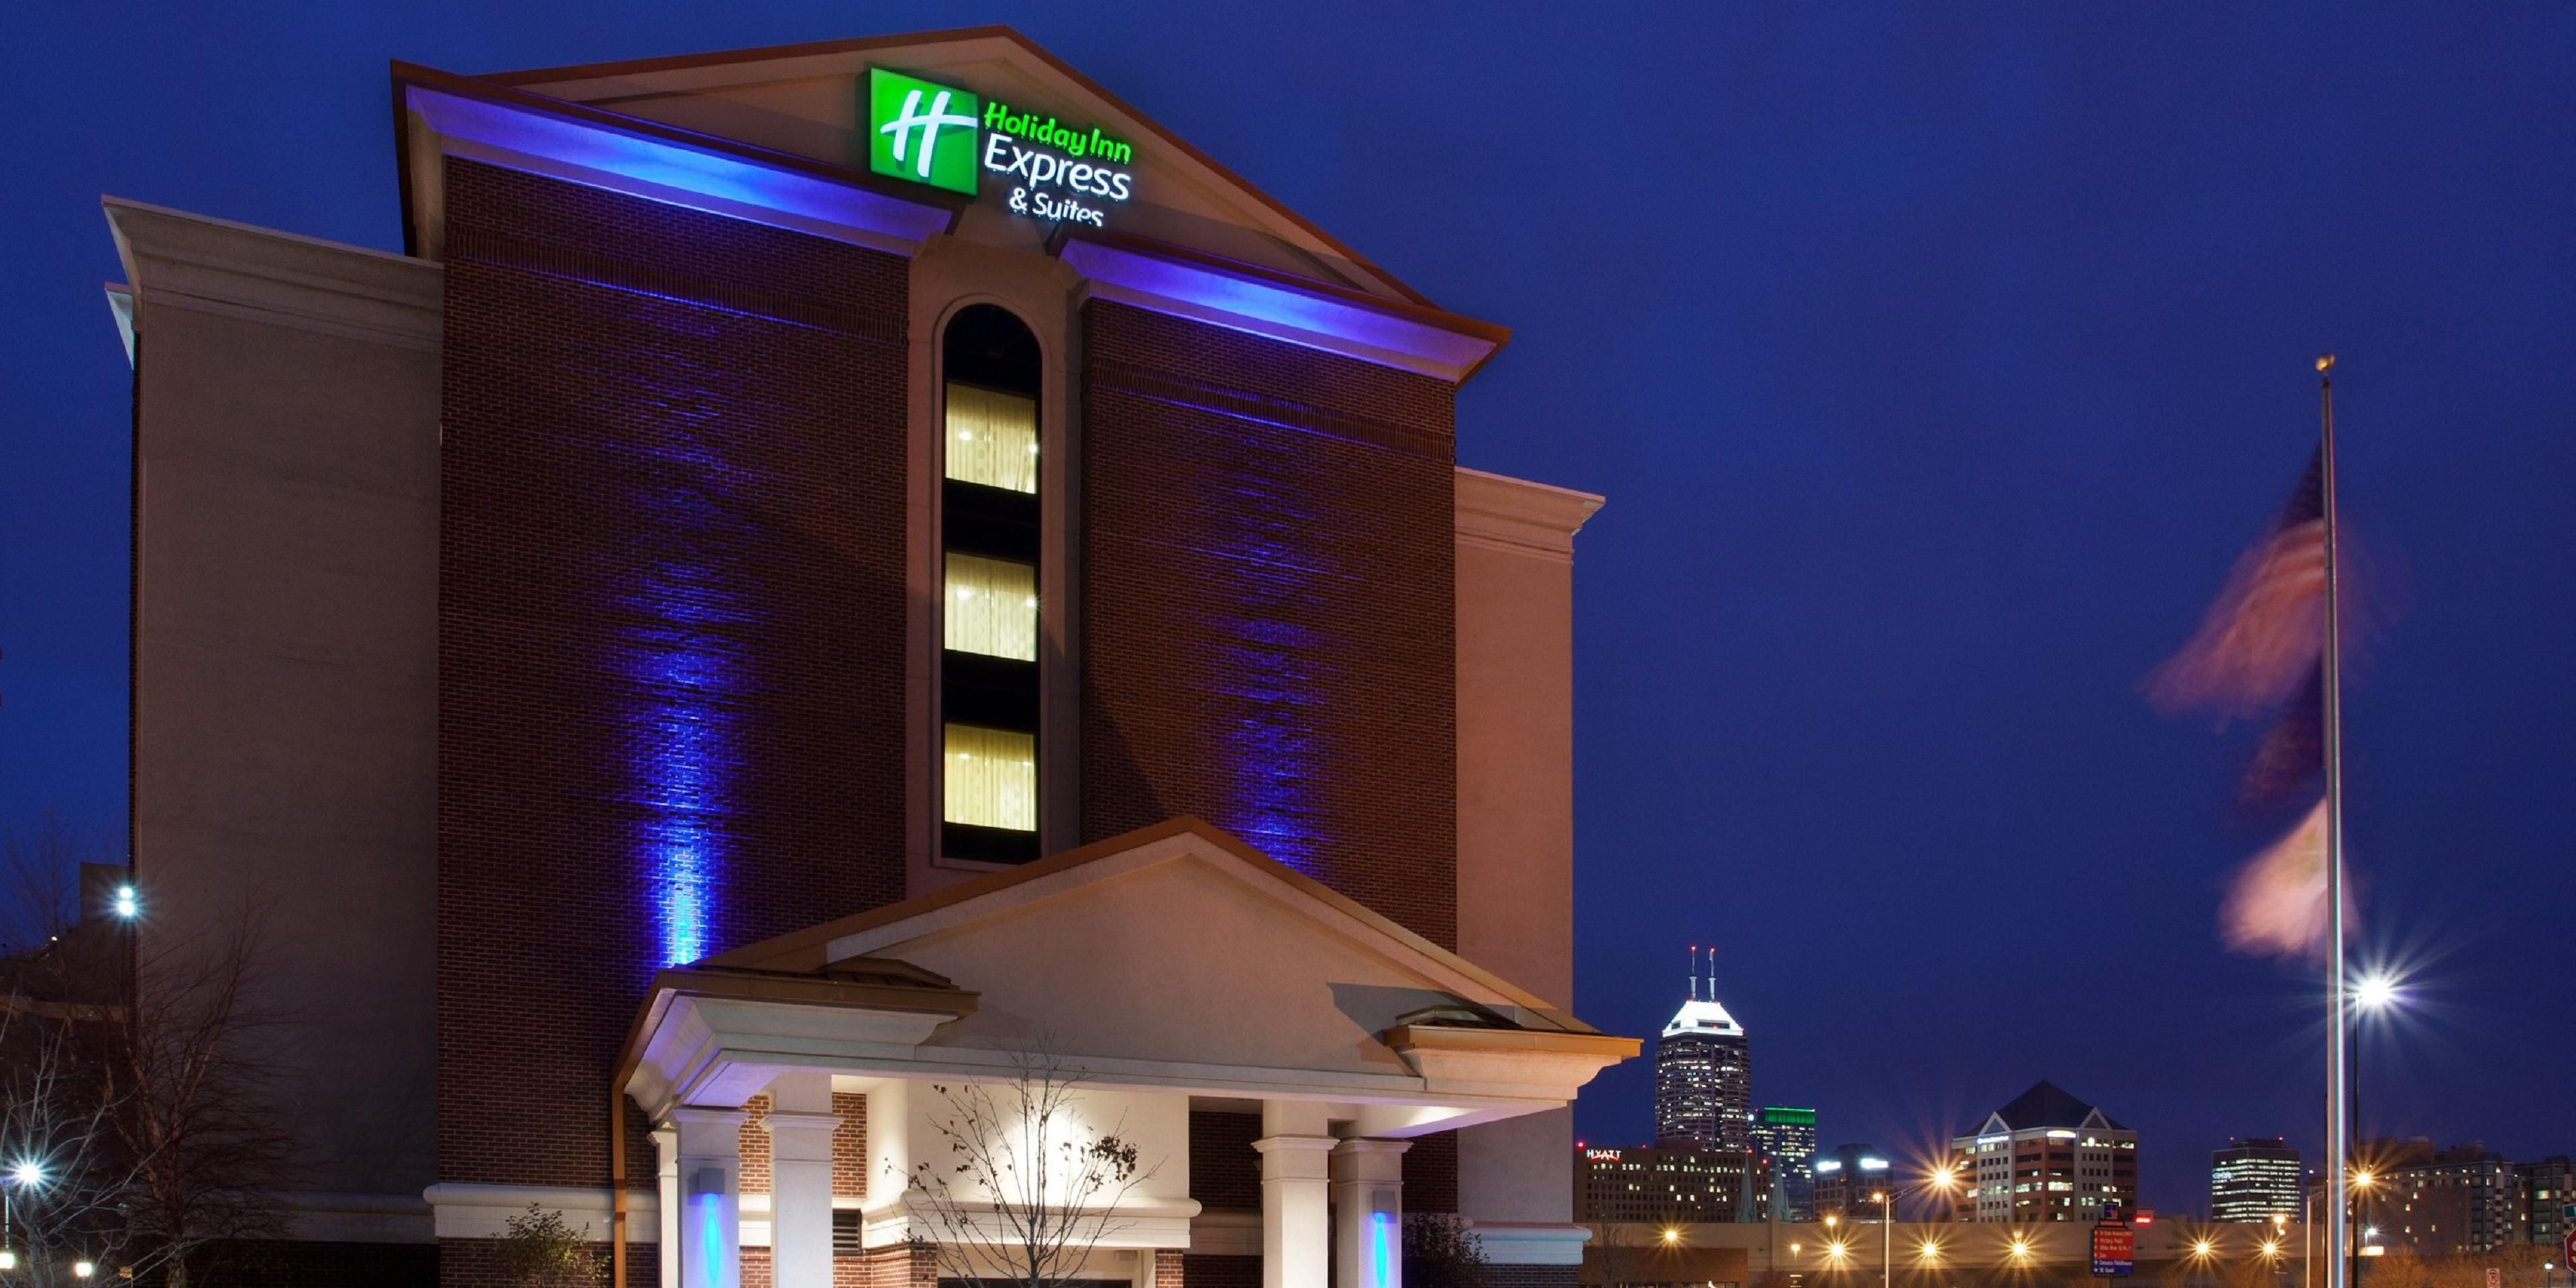 Charmant Holiday Inn Express U0026 Suites Indianapolis Dtn Conv Ctr Area Hotel In  Indianapolis By IHG